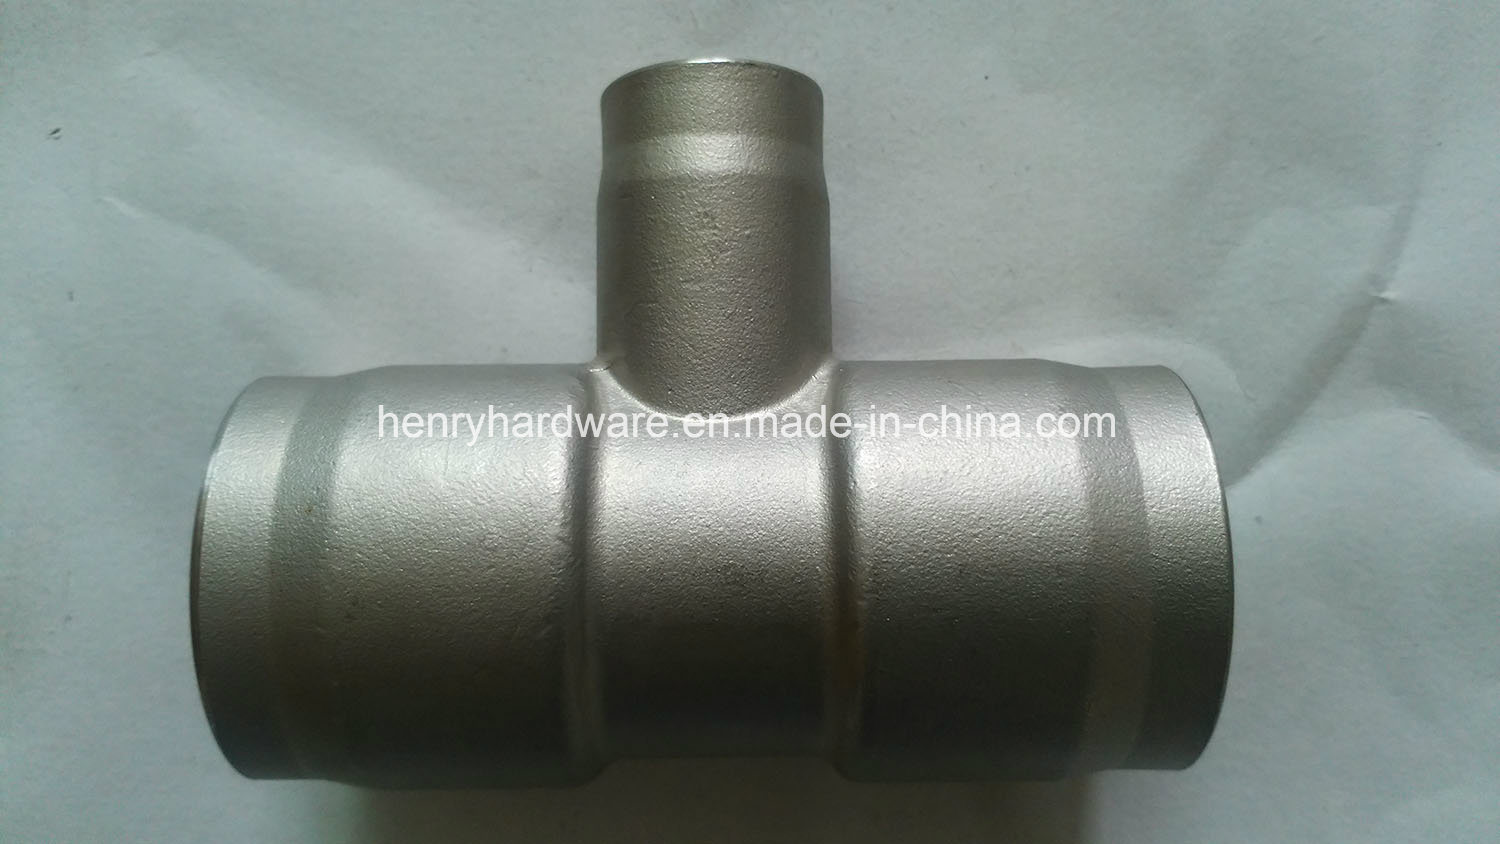 Investment Casting, Lost Wax Casting, Precision Casting